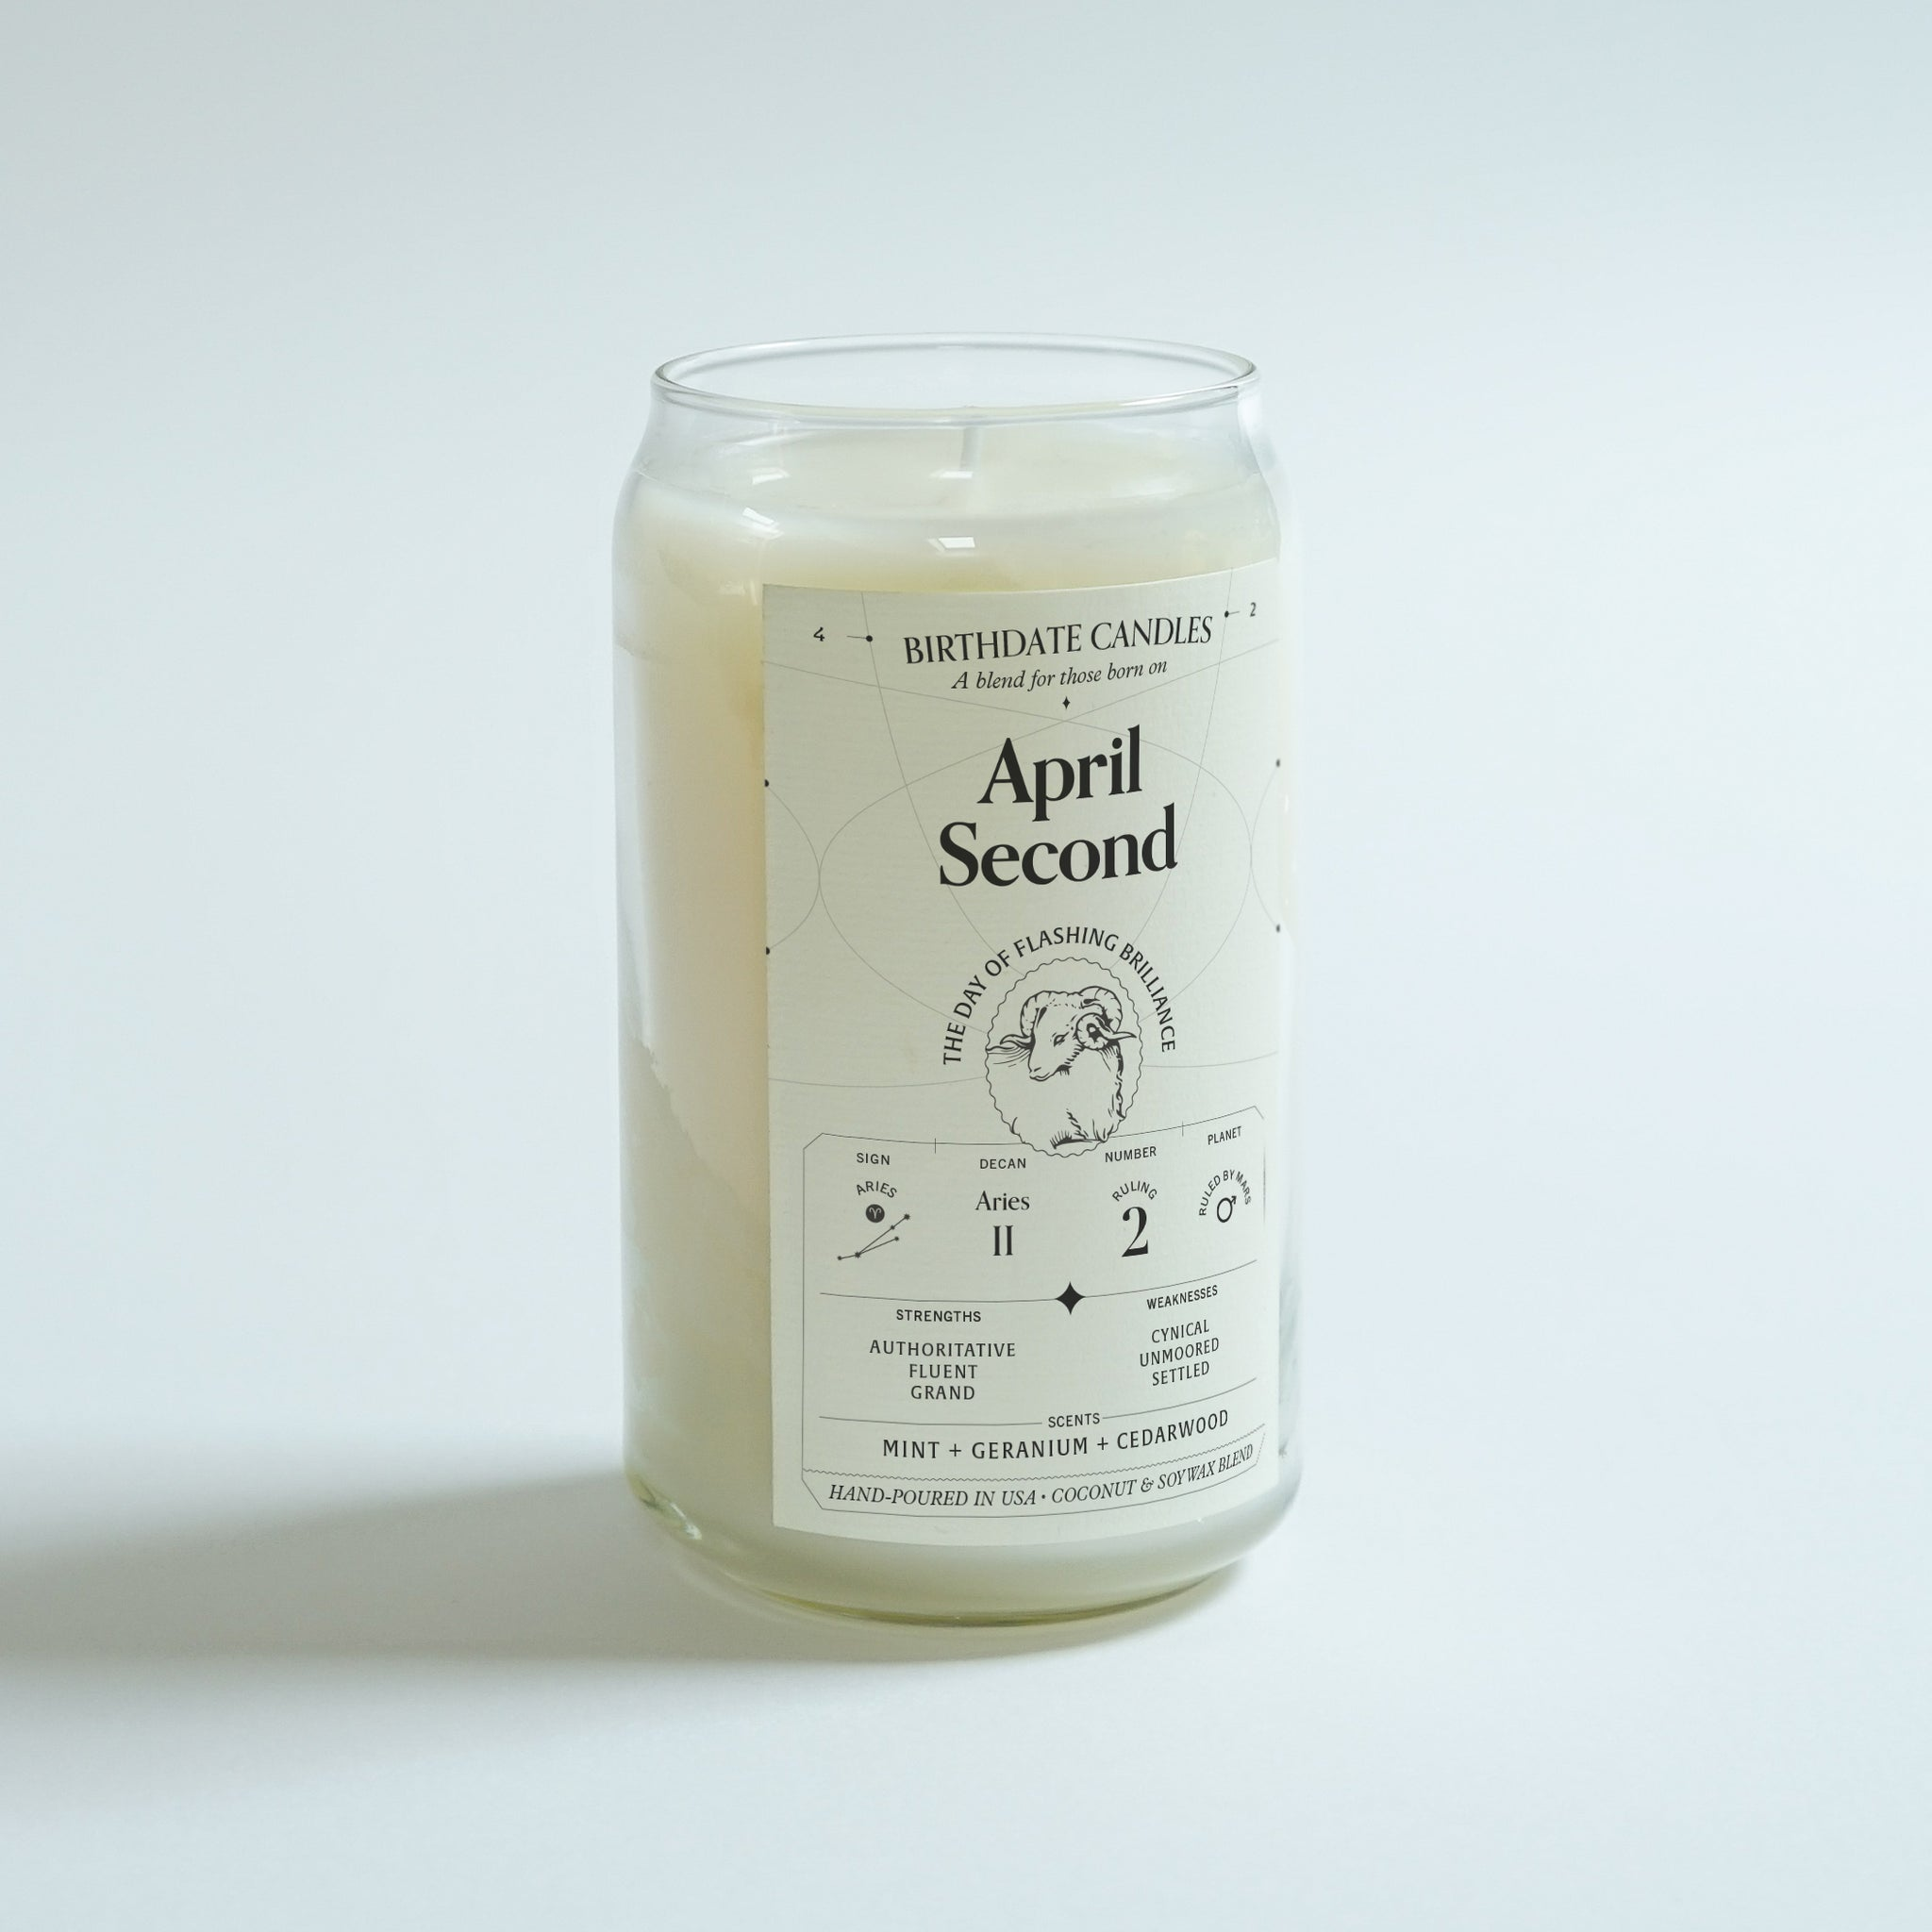 The April Second Birthday Candle